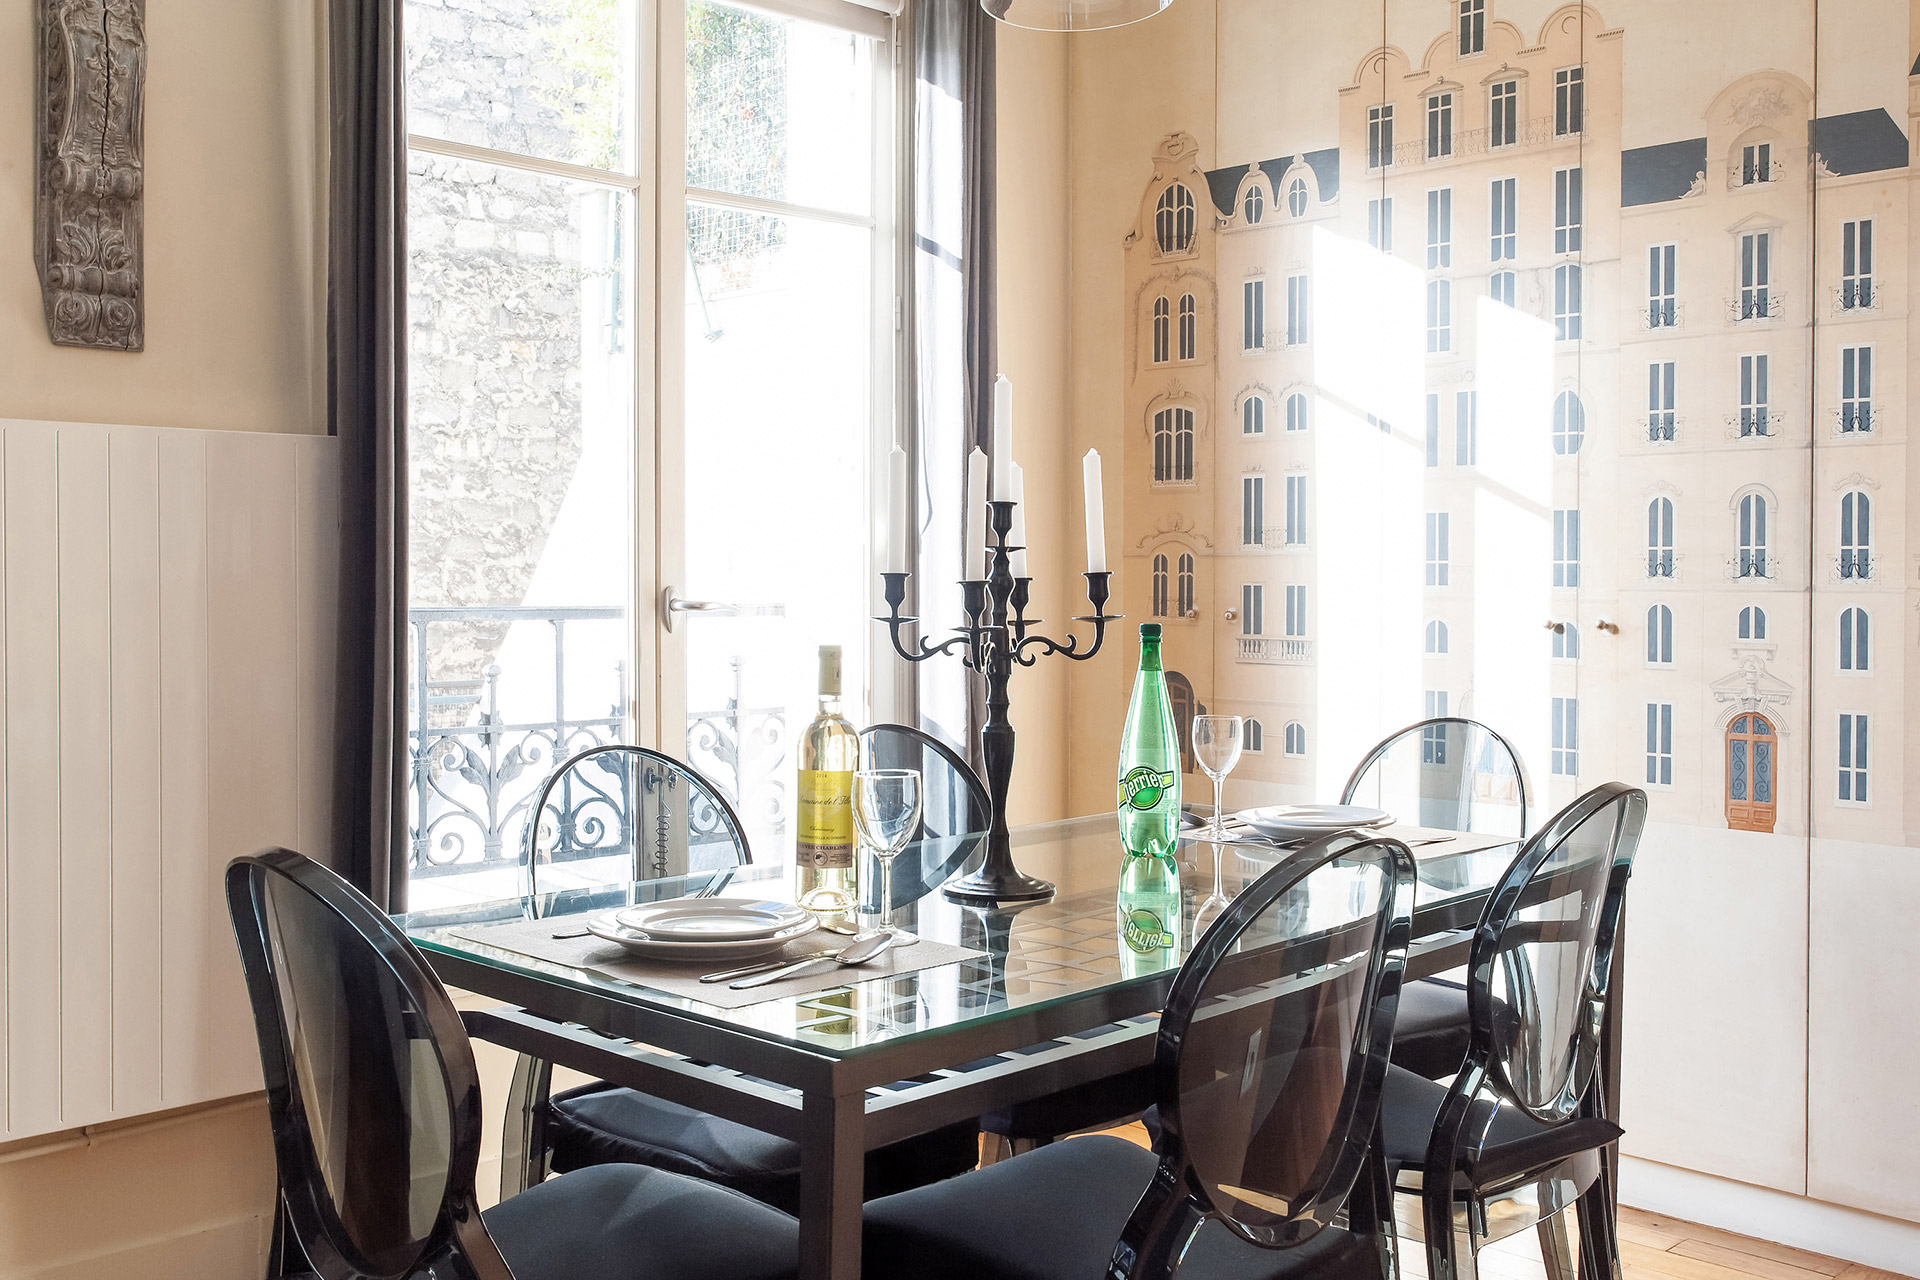 Dining table easily seats six people in the Romanée vacation rental offered by Paris Perfect